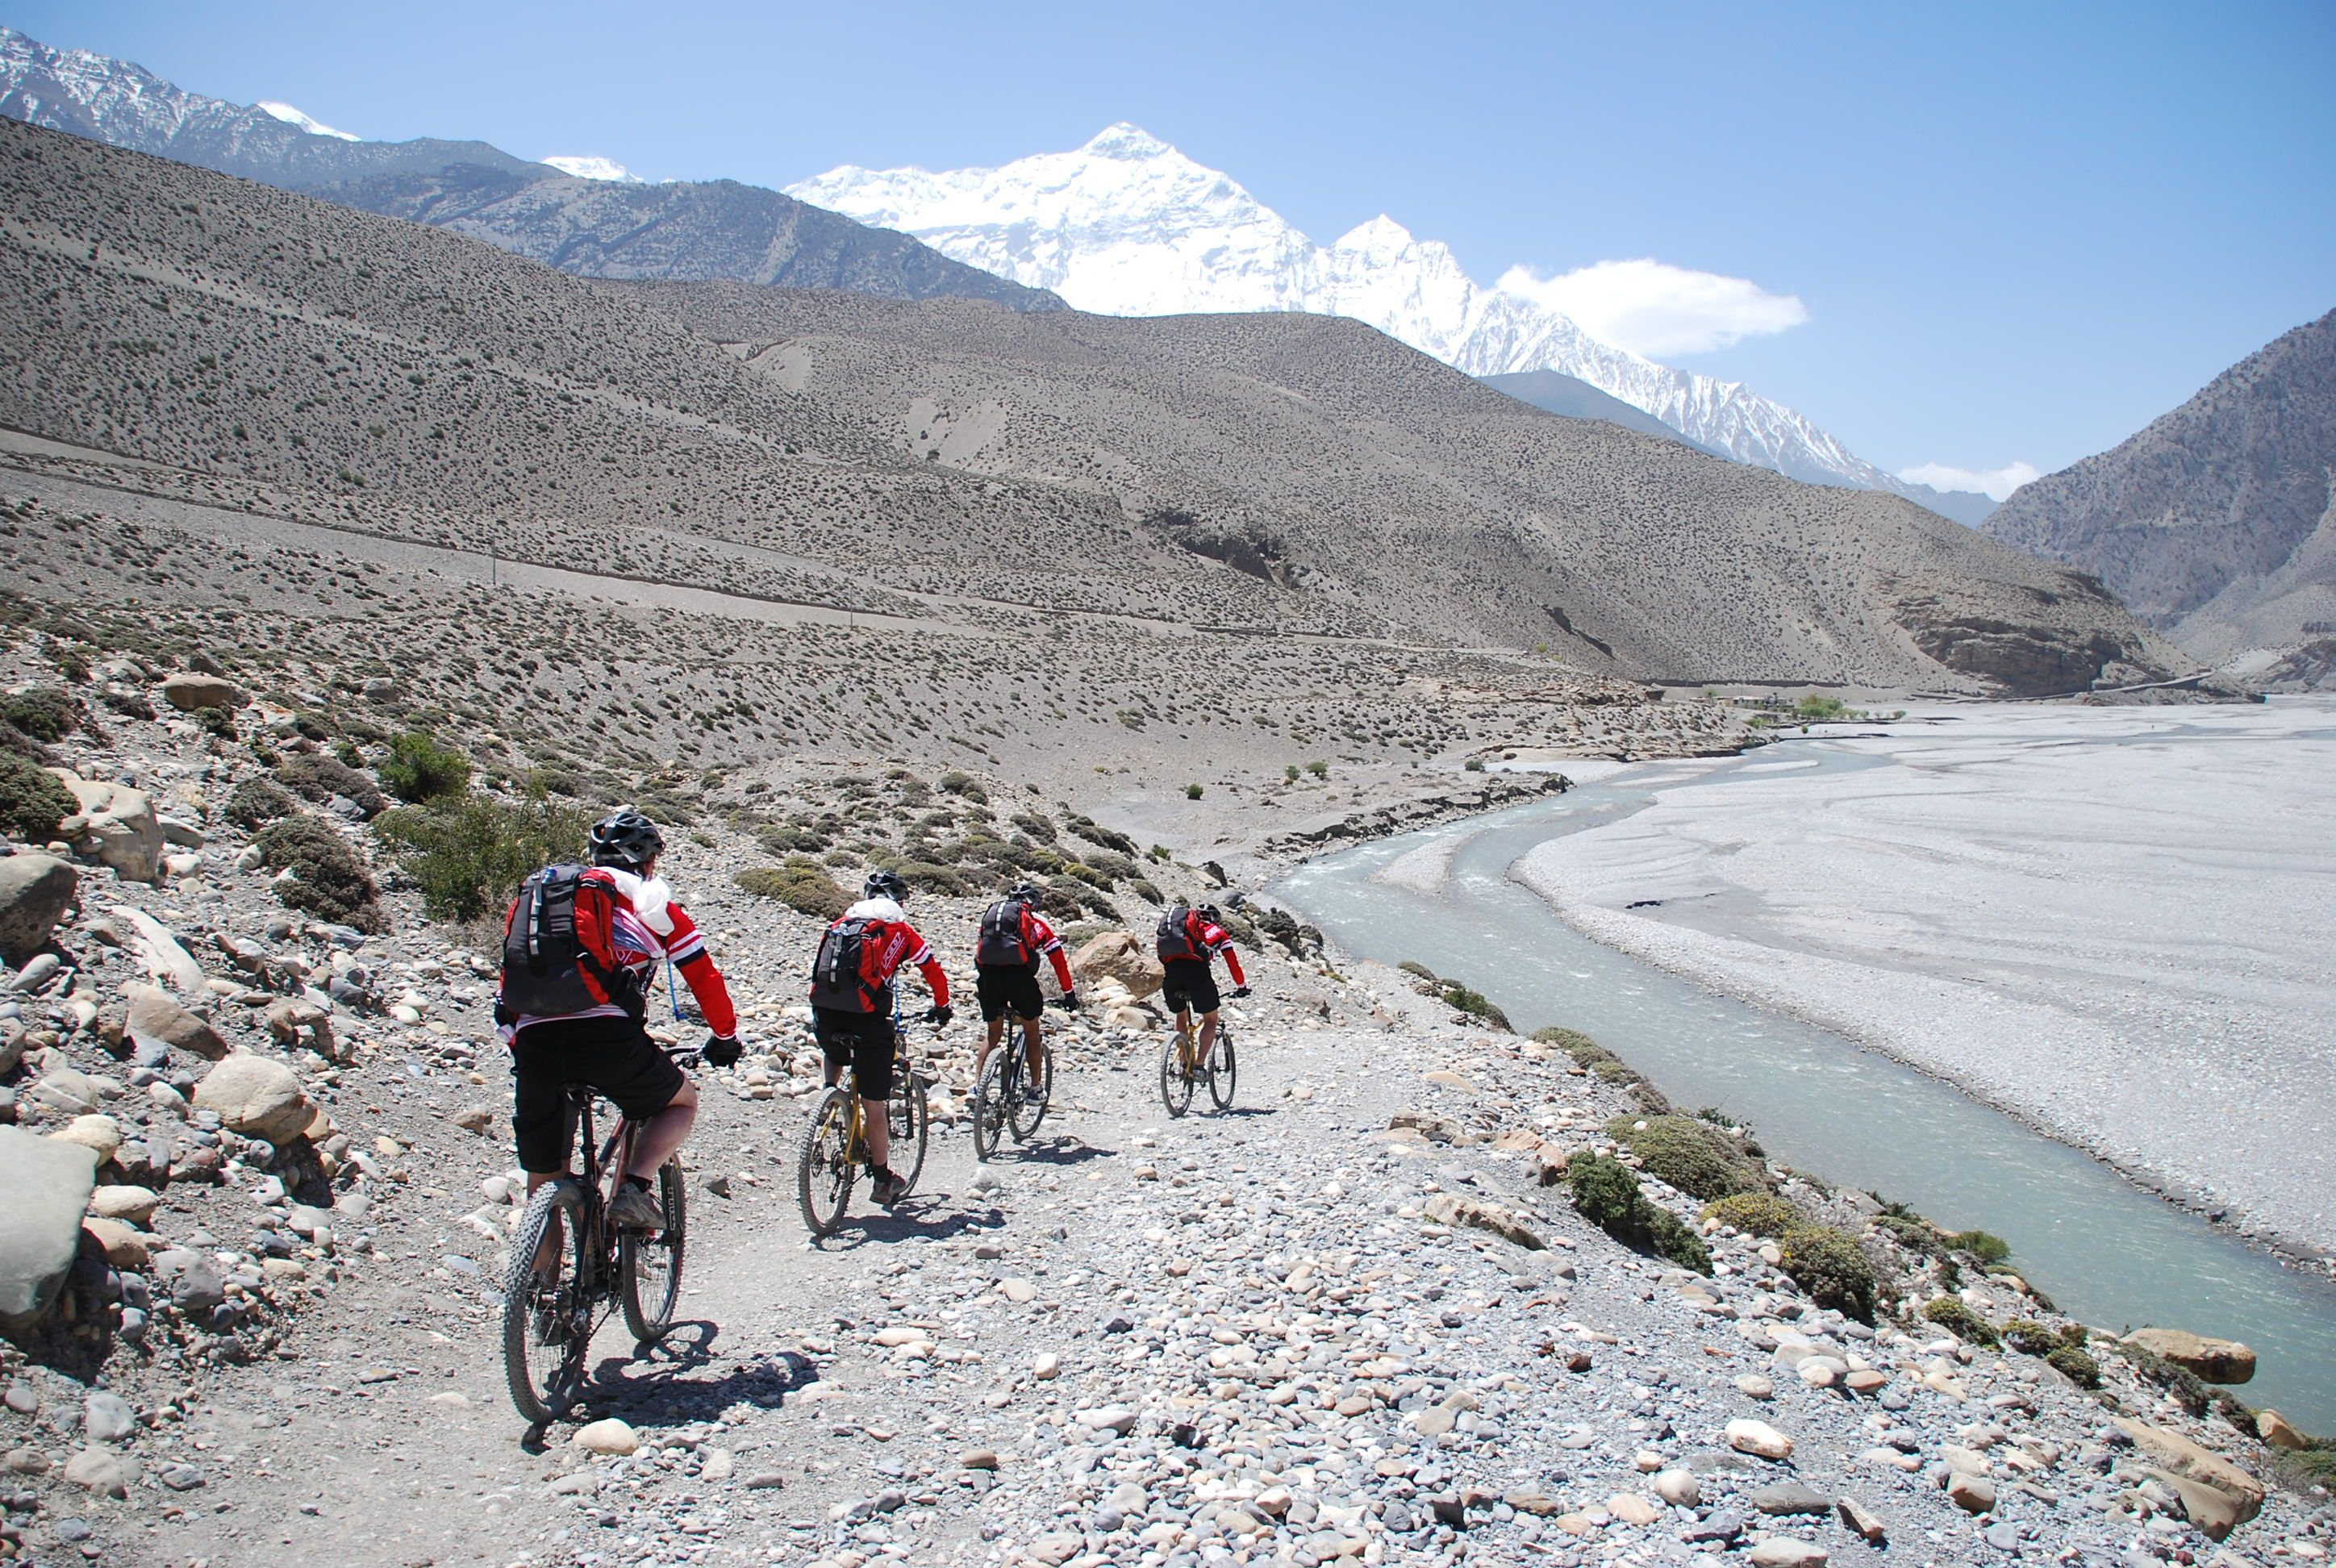 Himalaya Halle Jomsom Is In The Heart Of The Himalaya And Offers Some Spectacular Trails For Mountain Bikers. Pedaling Up Between The Nil… | Cycling Tour, Adventure Travel, Travel